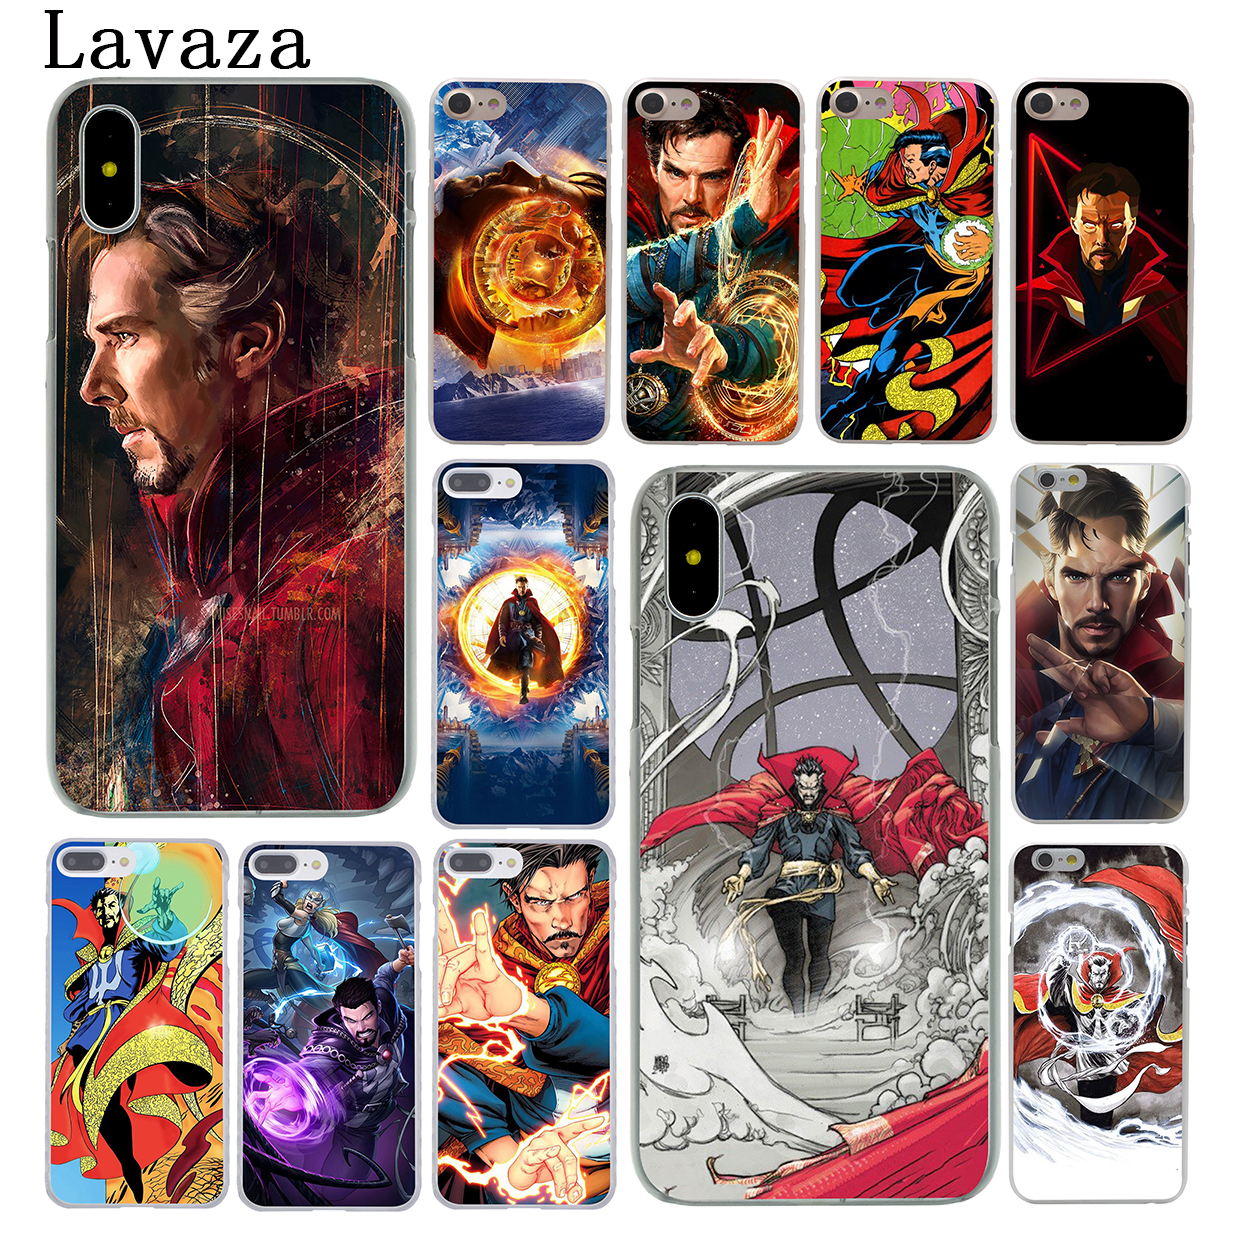 Lavaza Marvel The Avengers Infinity War Phone Case For Apple Iphone X Xr Xs Max 6 6s 7 8 Plus 5 5s Se 5c 4s 10 Doctor Strange Easy To Use Half-wrapped Case